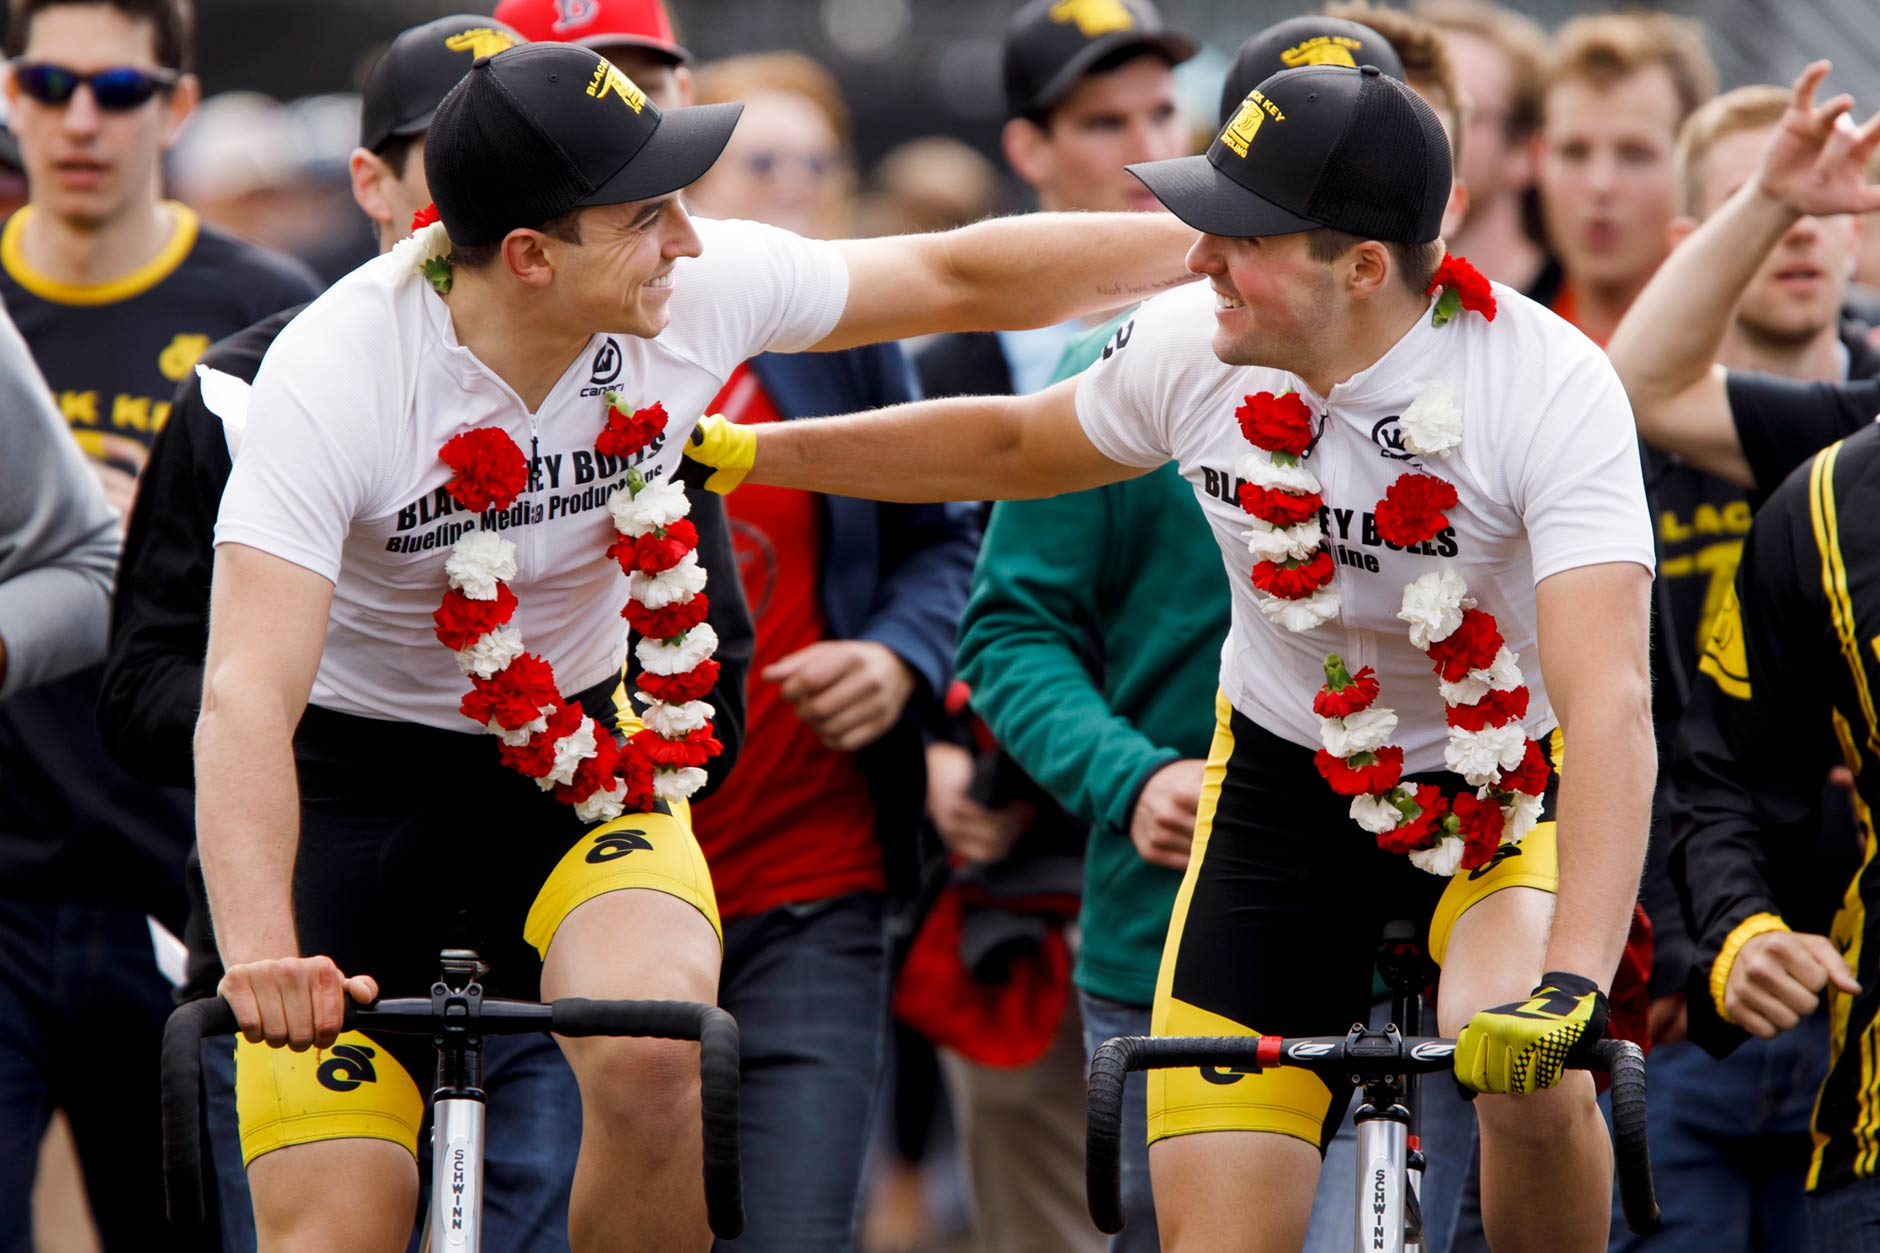 Black Key Bulls riders Xavier Martinez, left, and Charlie Hammon share a moment on the team's victory lap after winning the Men's Little 500 at Bill Armstrong Stadium on Saturday, April 22, 2017. (James Brosher/IU Communications)